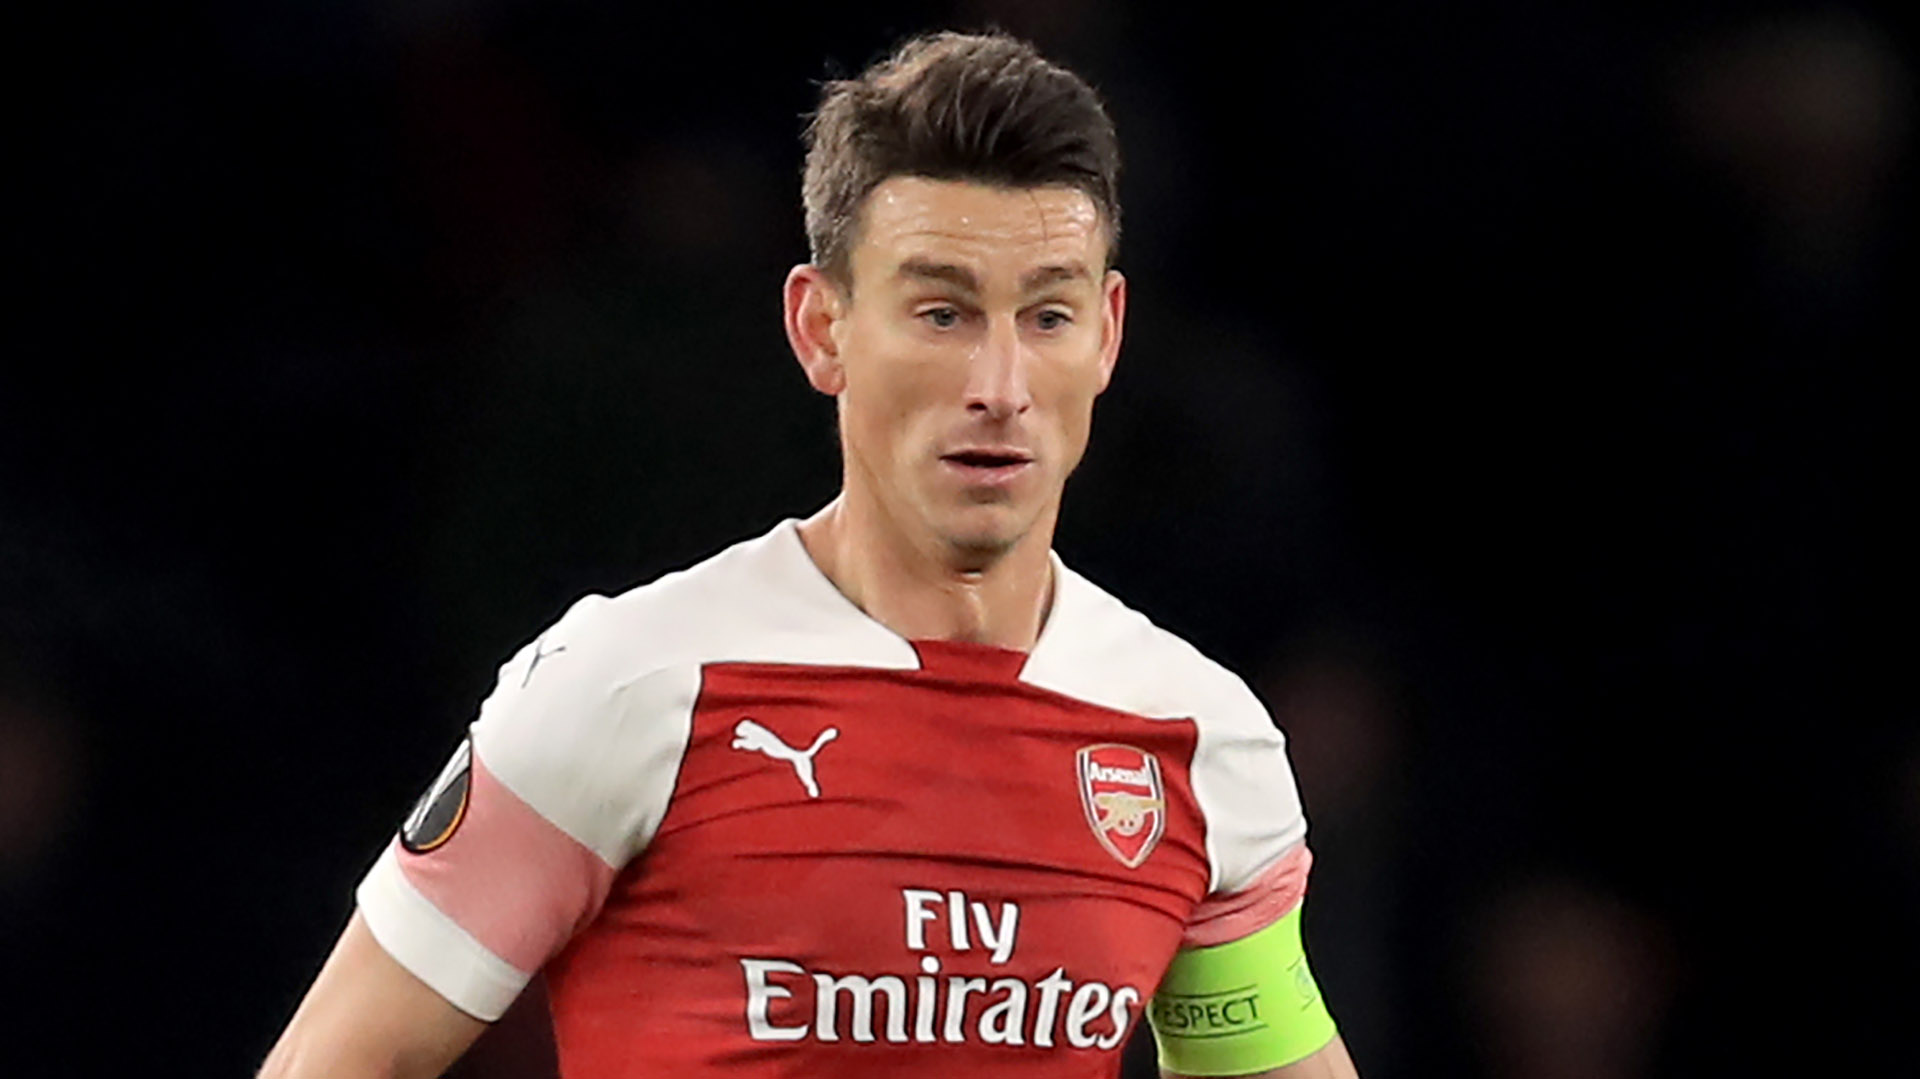 Arsenal's Mesut Ozil could feature against Qarabag on Thursday